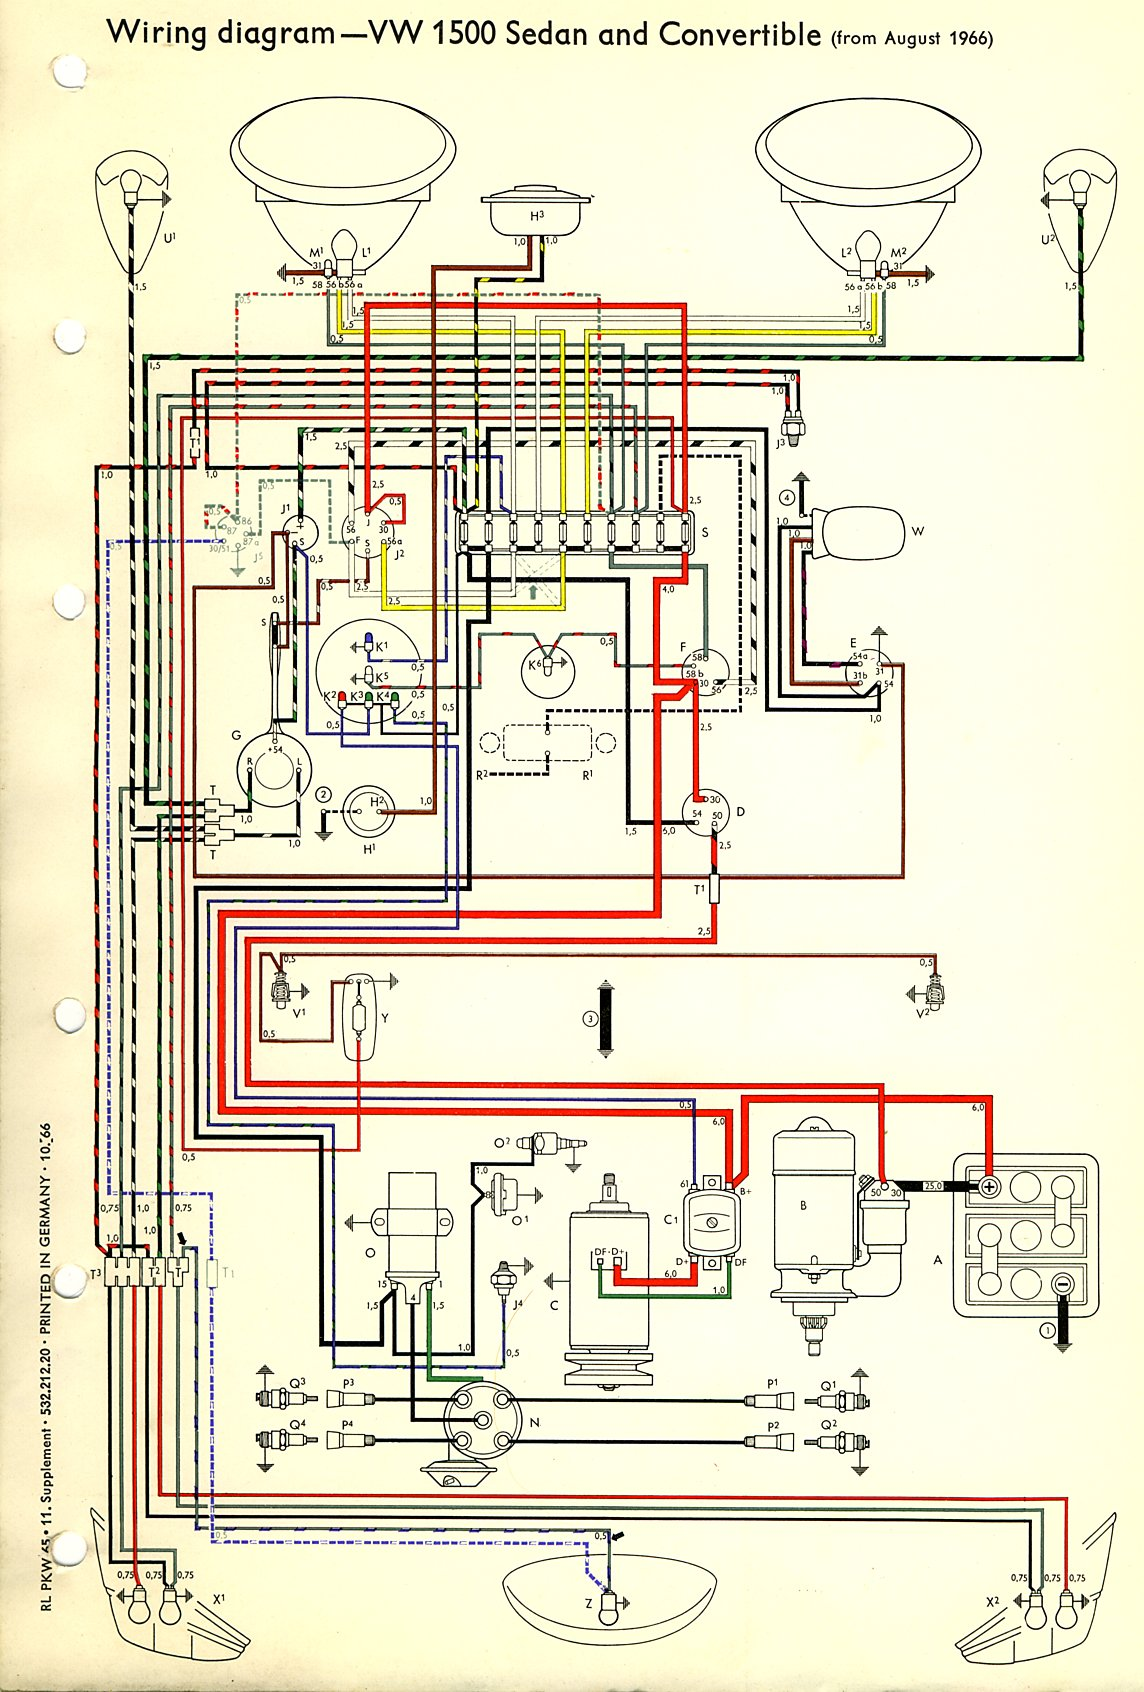 vw wiring harness diagram also organisedmum de \u202267 vw wiring harness 19 stromoeko de u2022 rh 19 stromoeko de 2001 vw passat radio wiring harness diagram